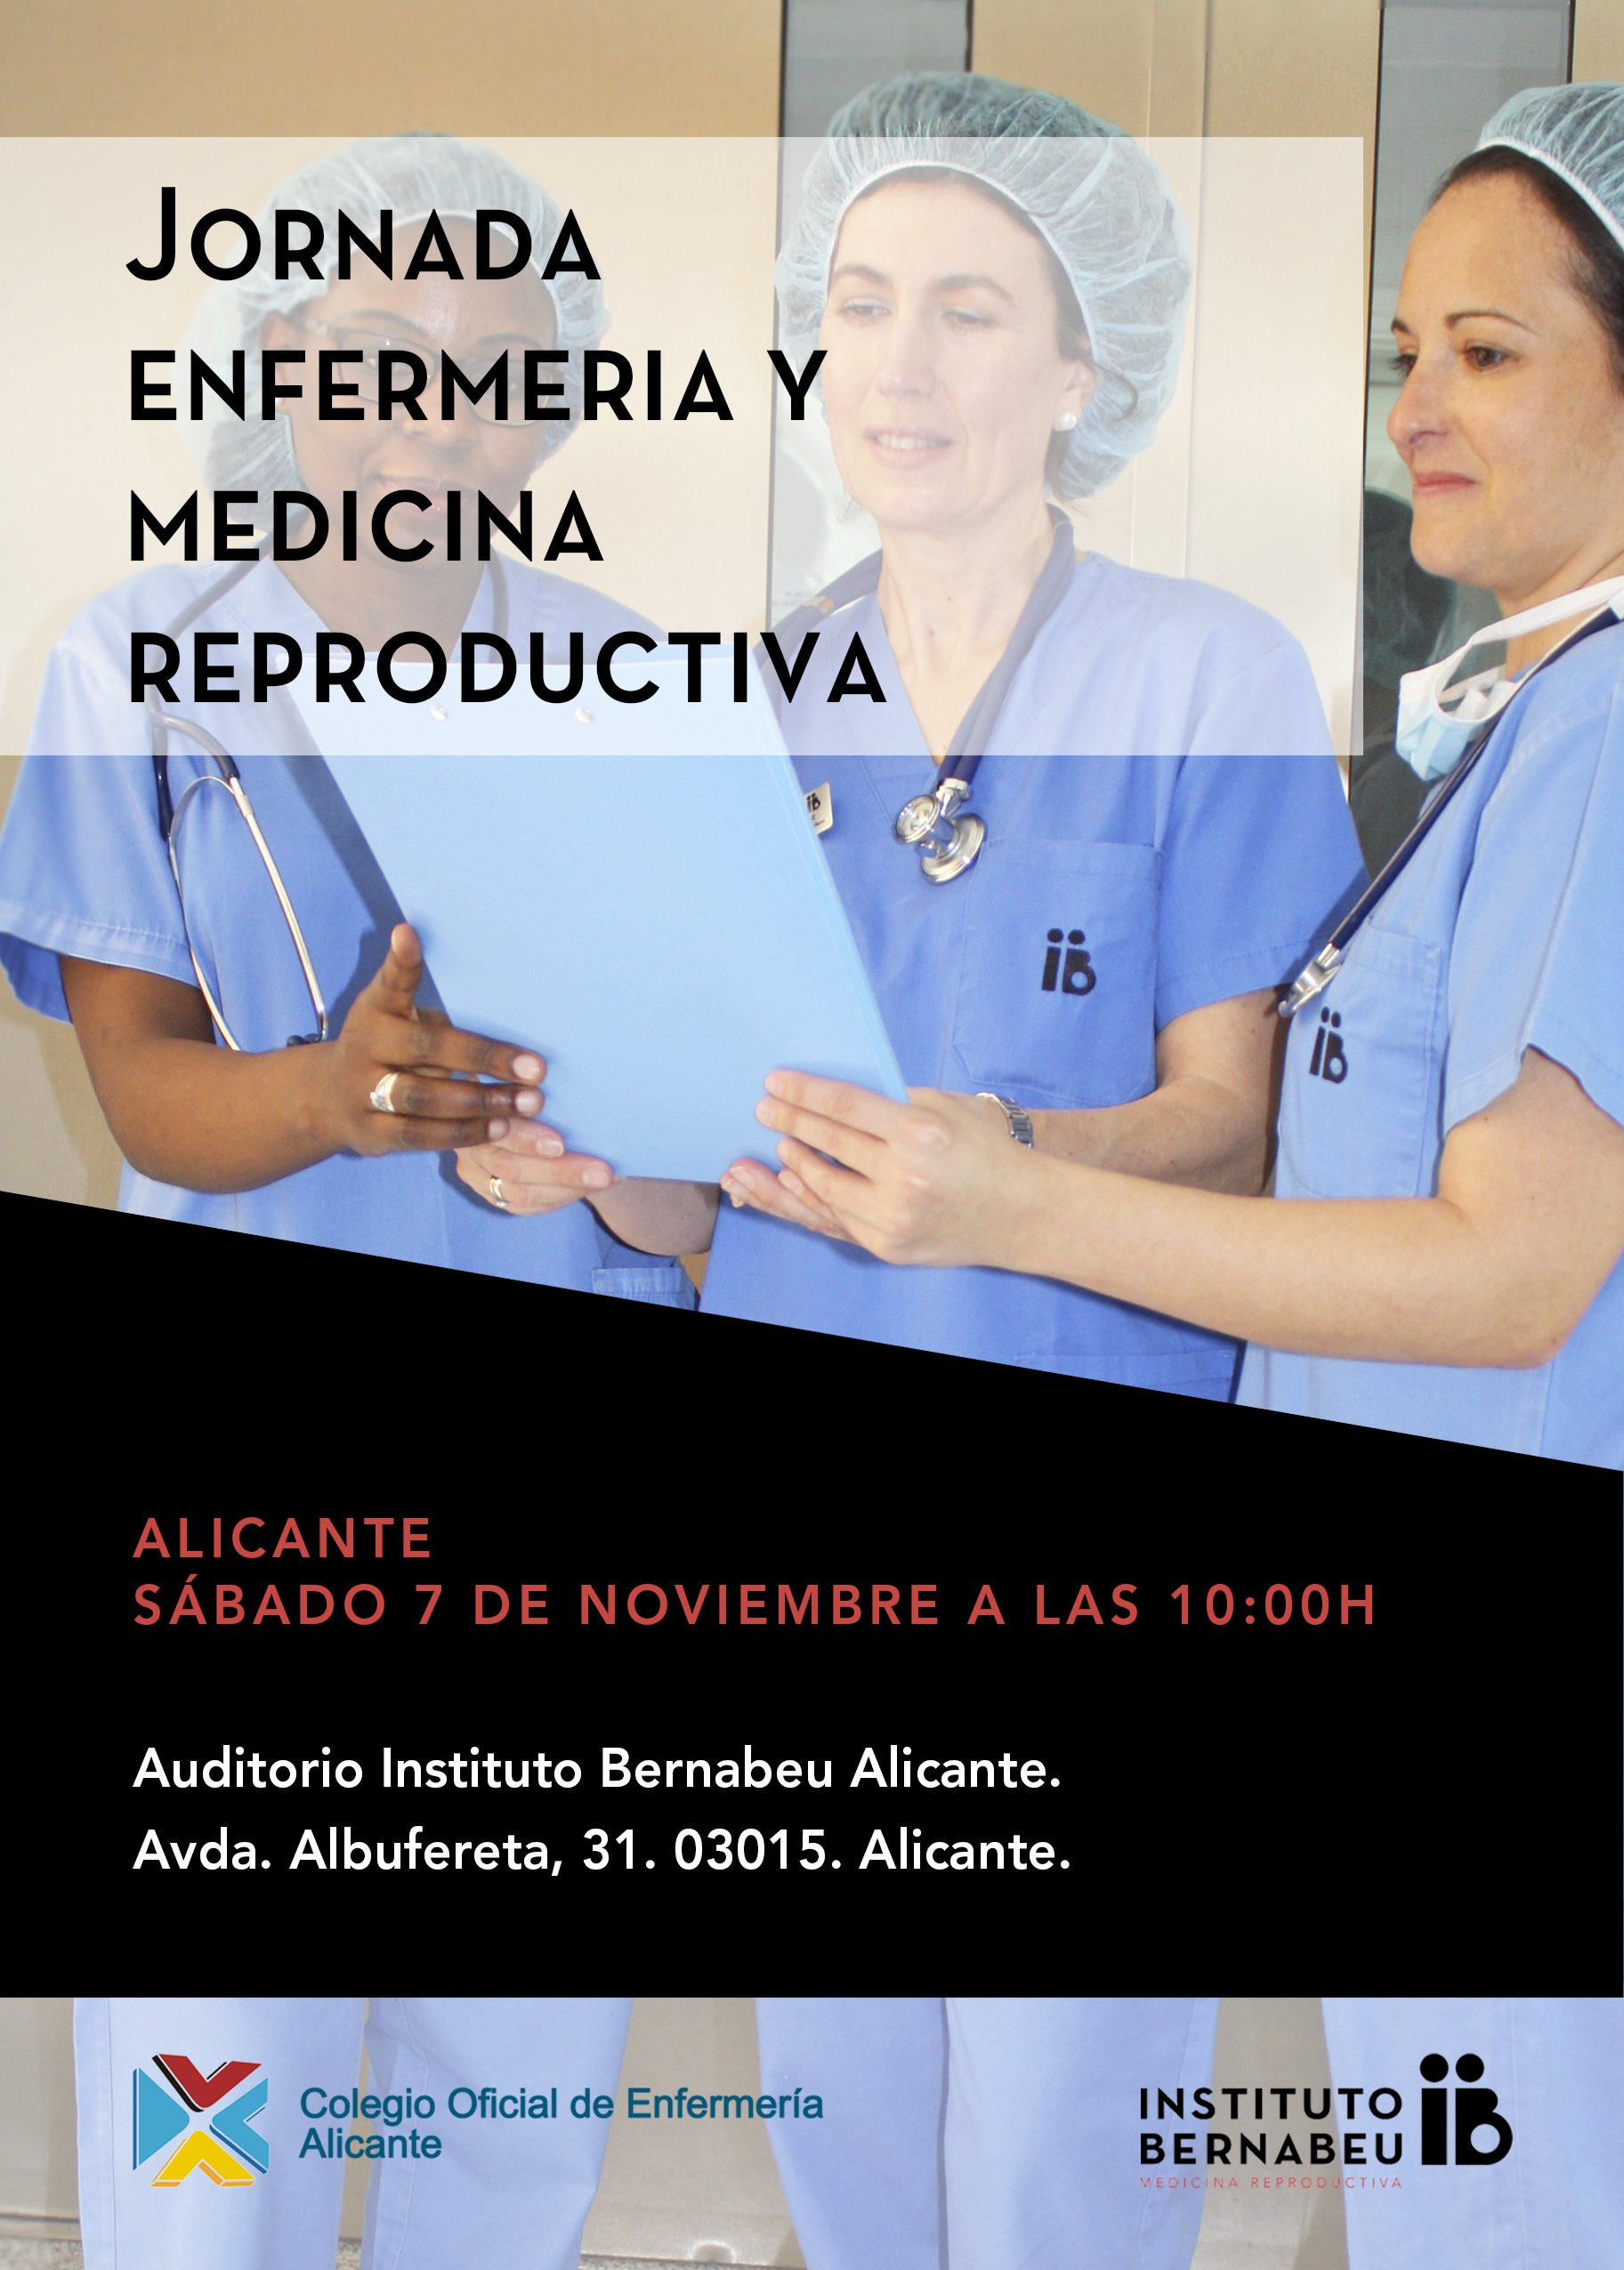 Reproductive Medicine and Nursing Conference